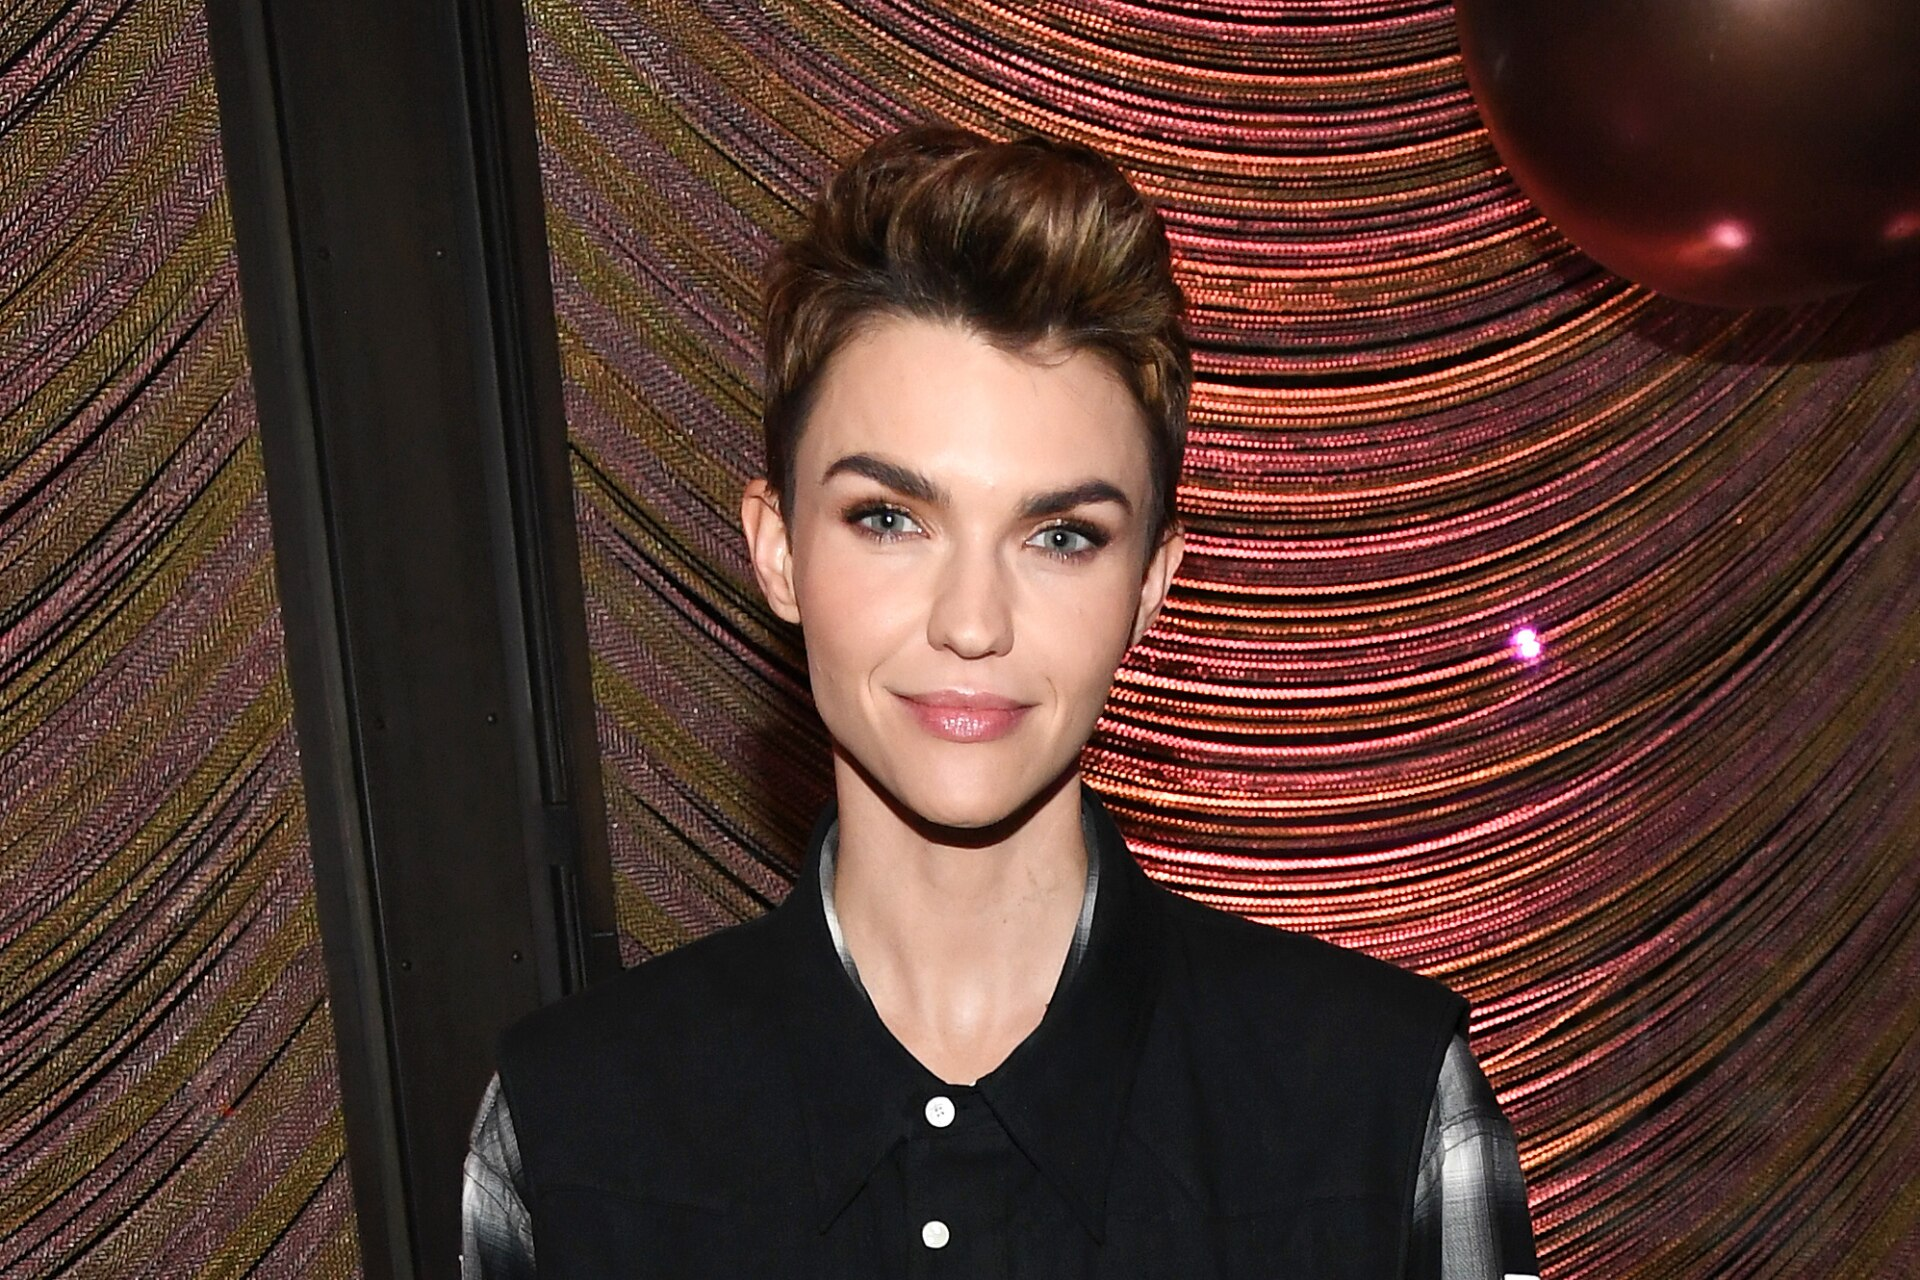 Inside Ruby Rose's $2.8 million L.A. home, with a distinct farmhouse aesthetic